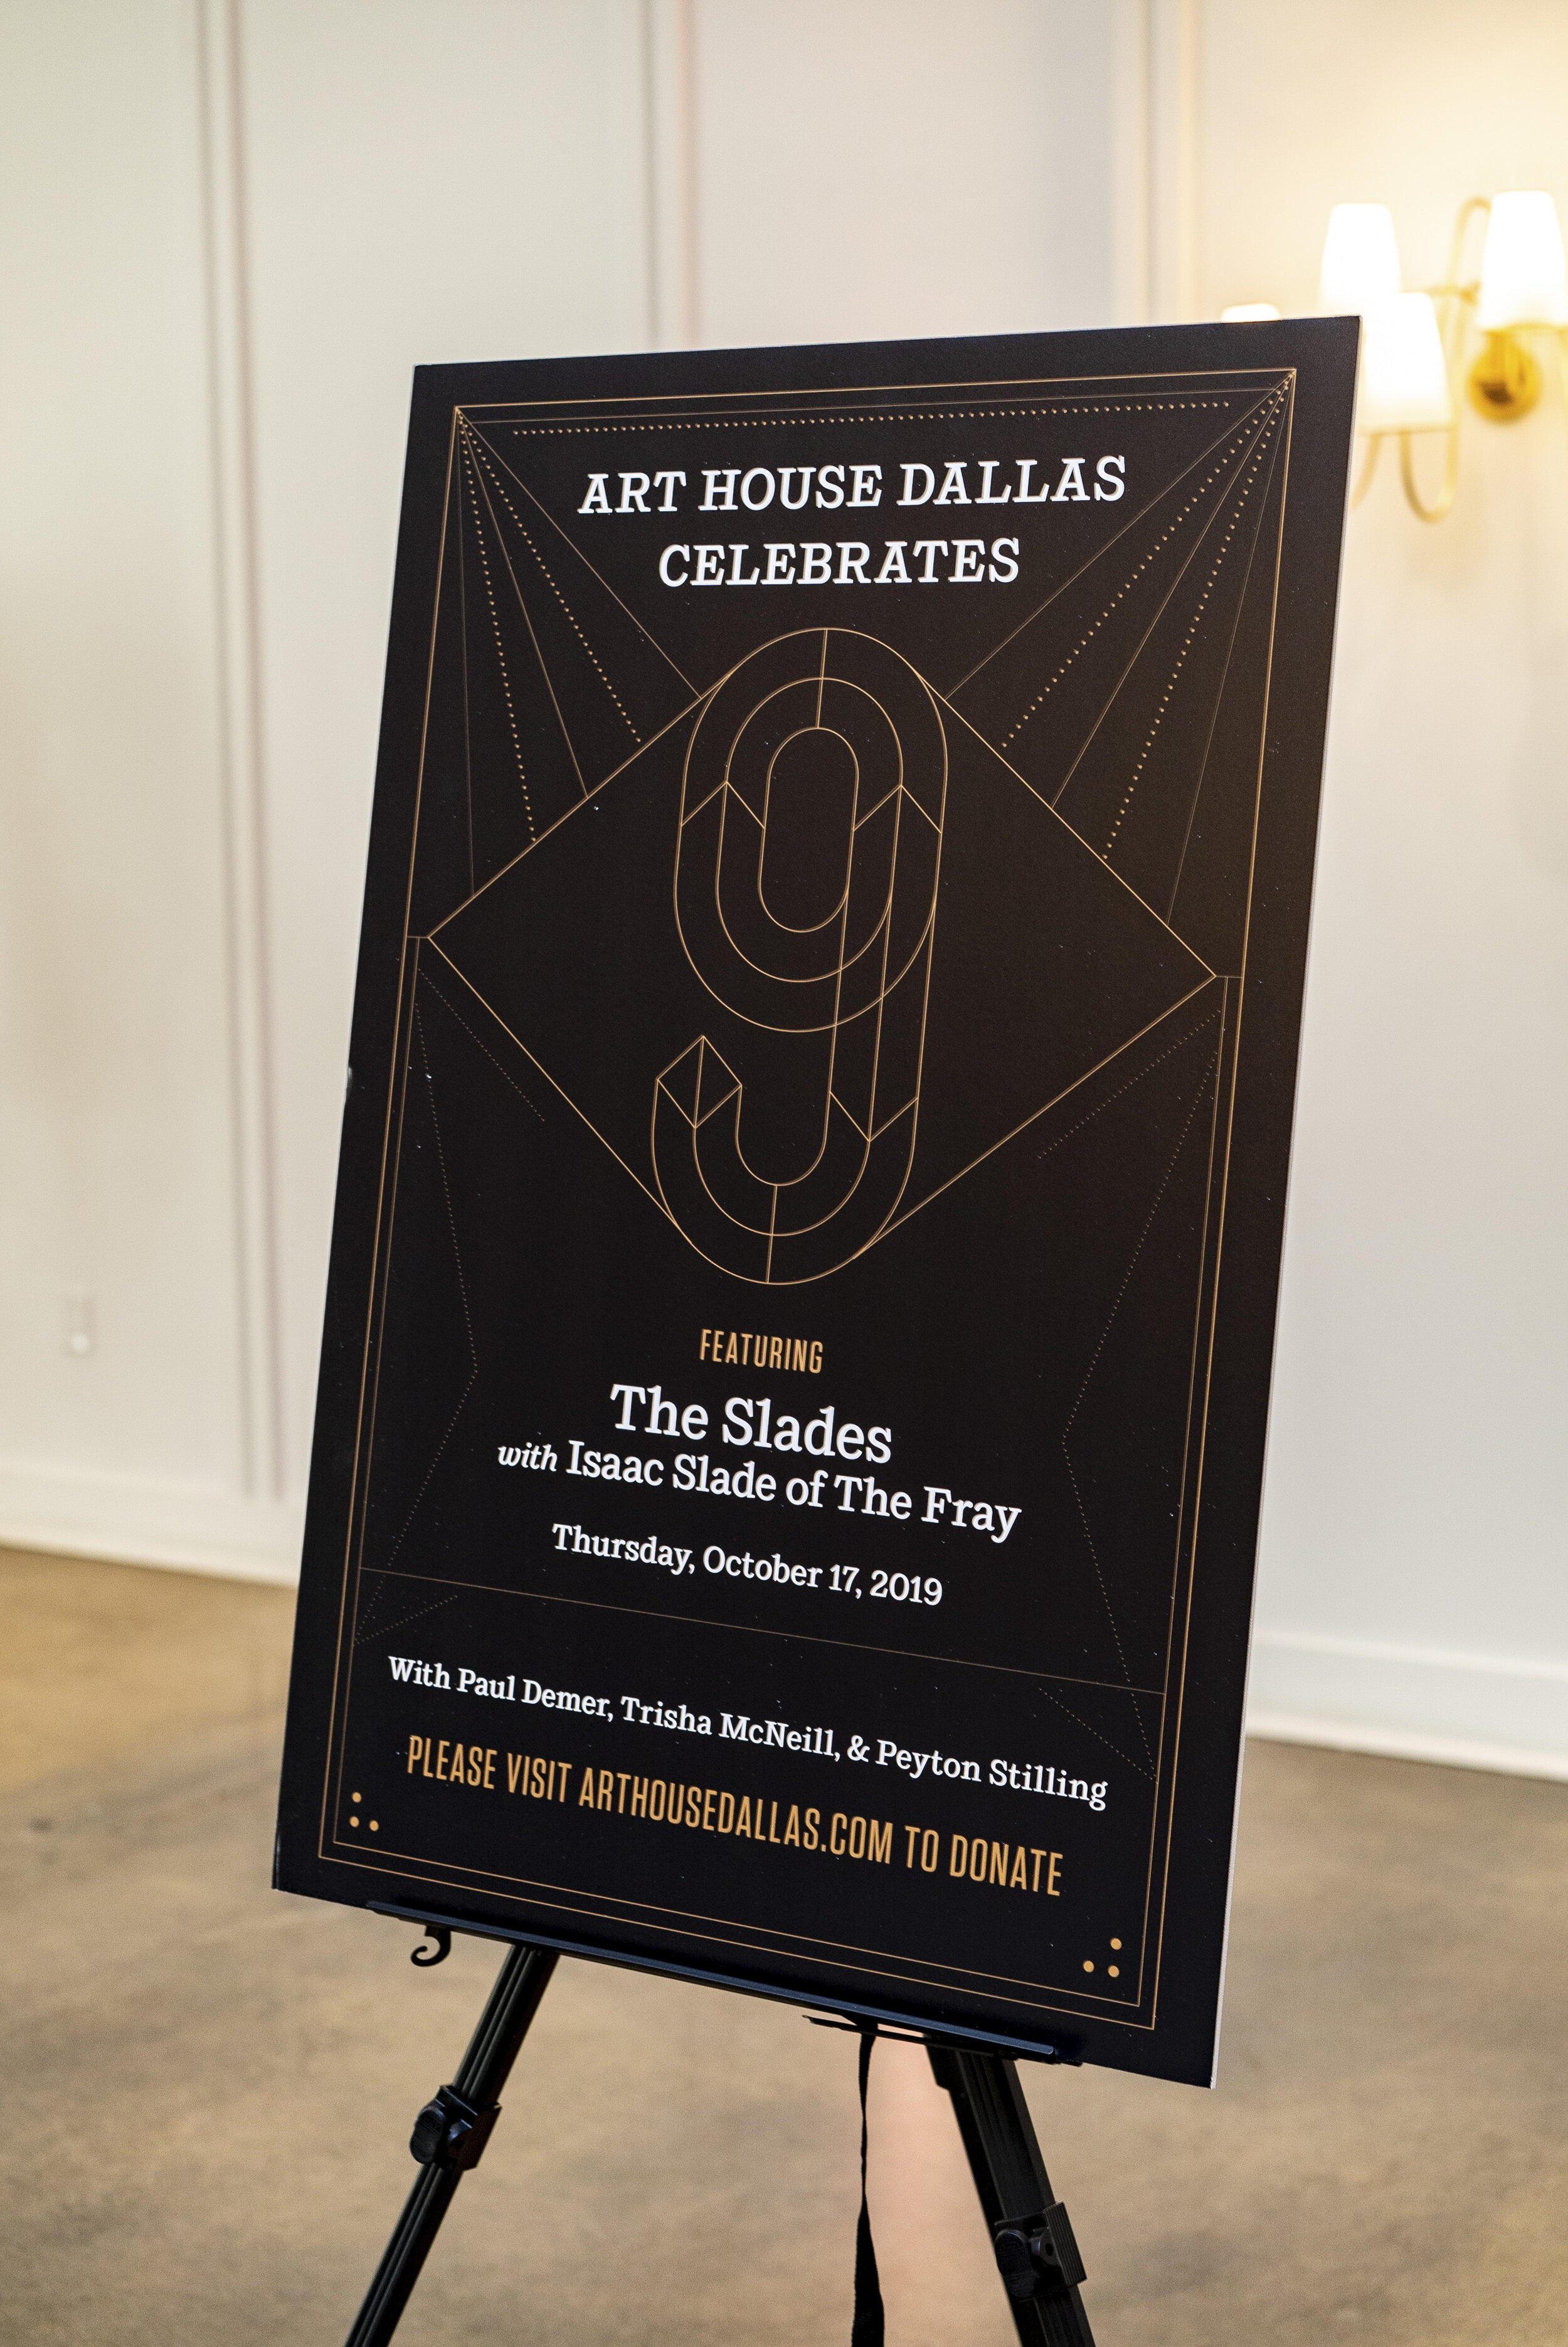 Art House Dallas 9th Anniversary_46_1.JPG